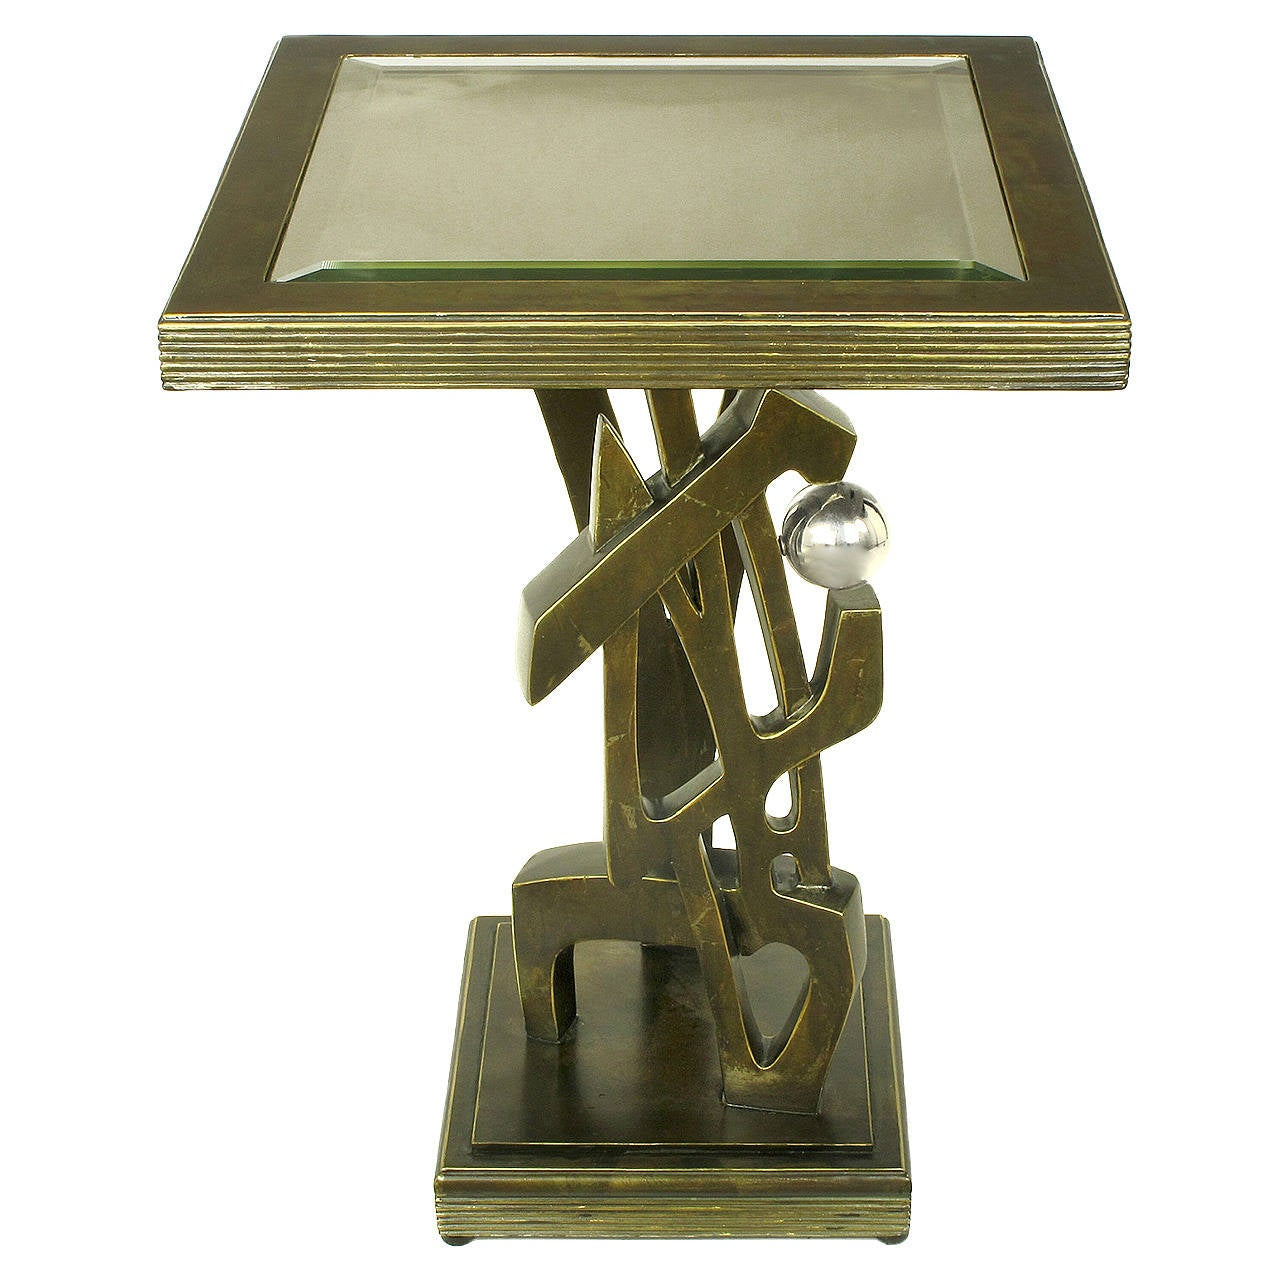 Bronzed Metal and Resin Artisan Sculpture Side Table with Chrome Ball For Sale